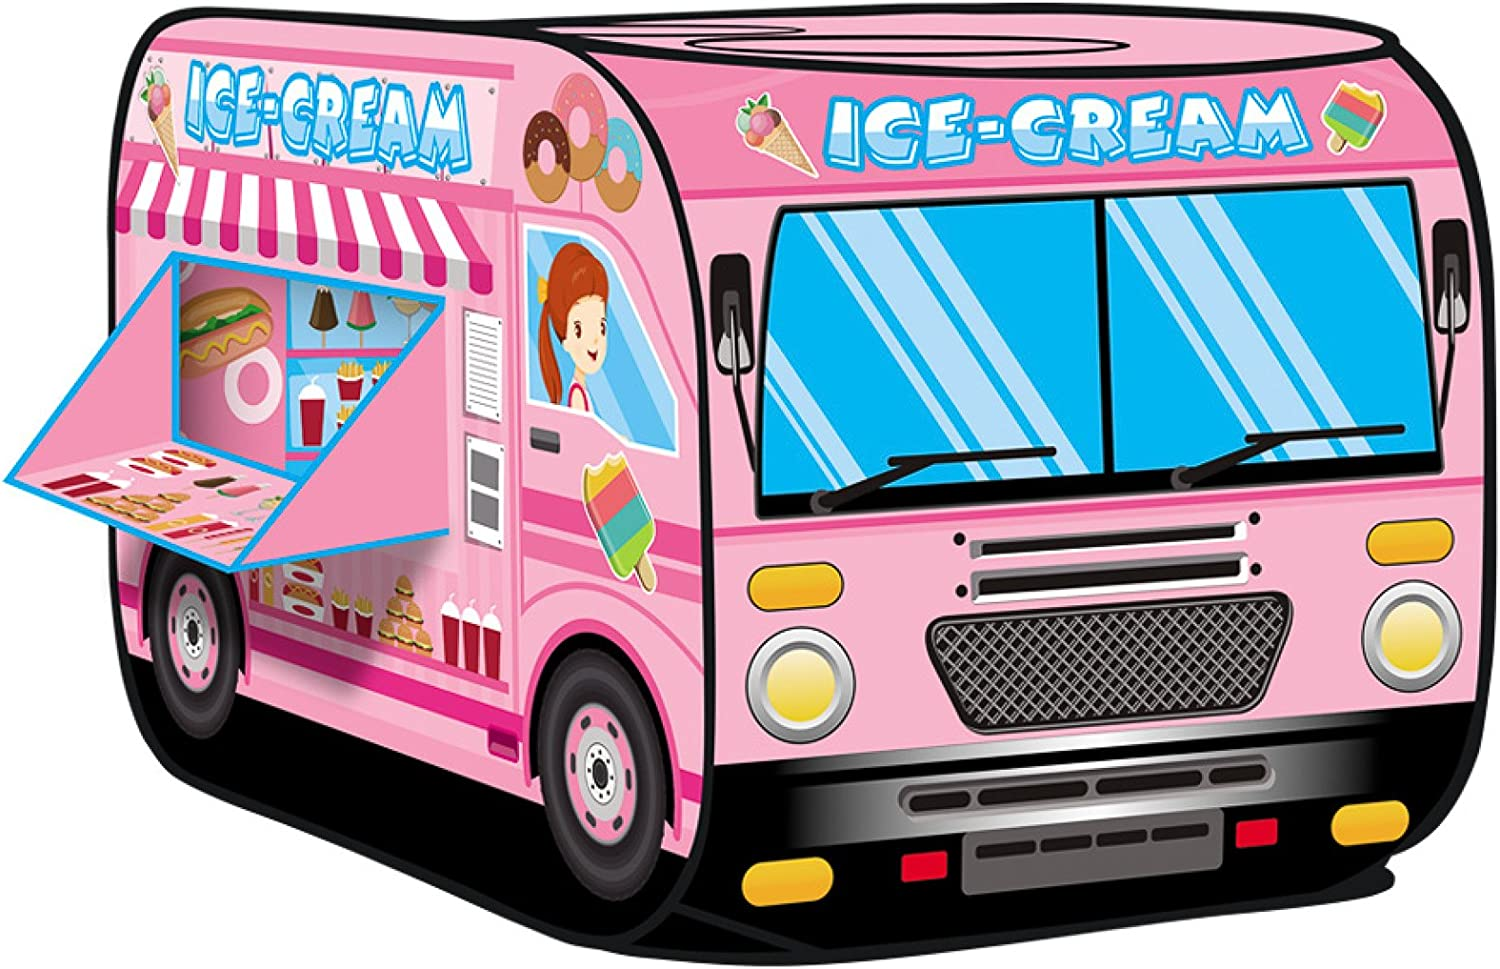 Kiddie Play Ice Cream Truck Pop Up Kids Play Tent for Boys and Girls Indoor Outdoor Toy